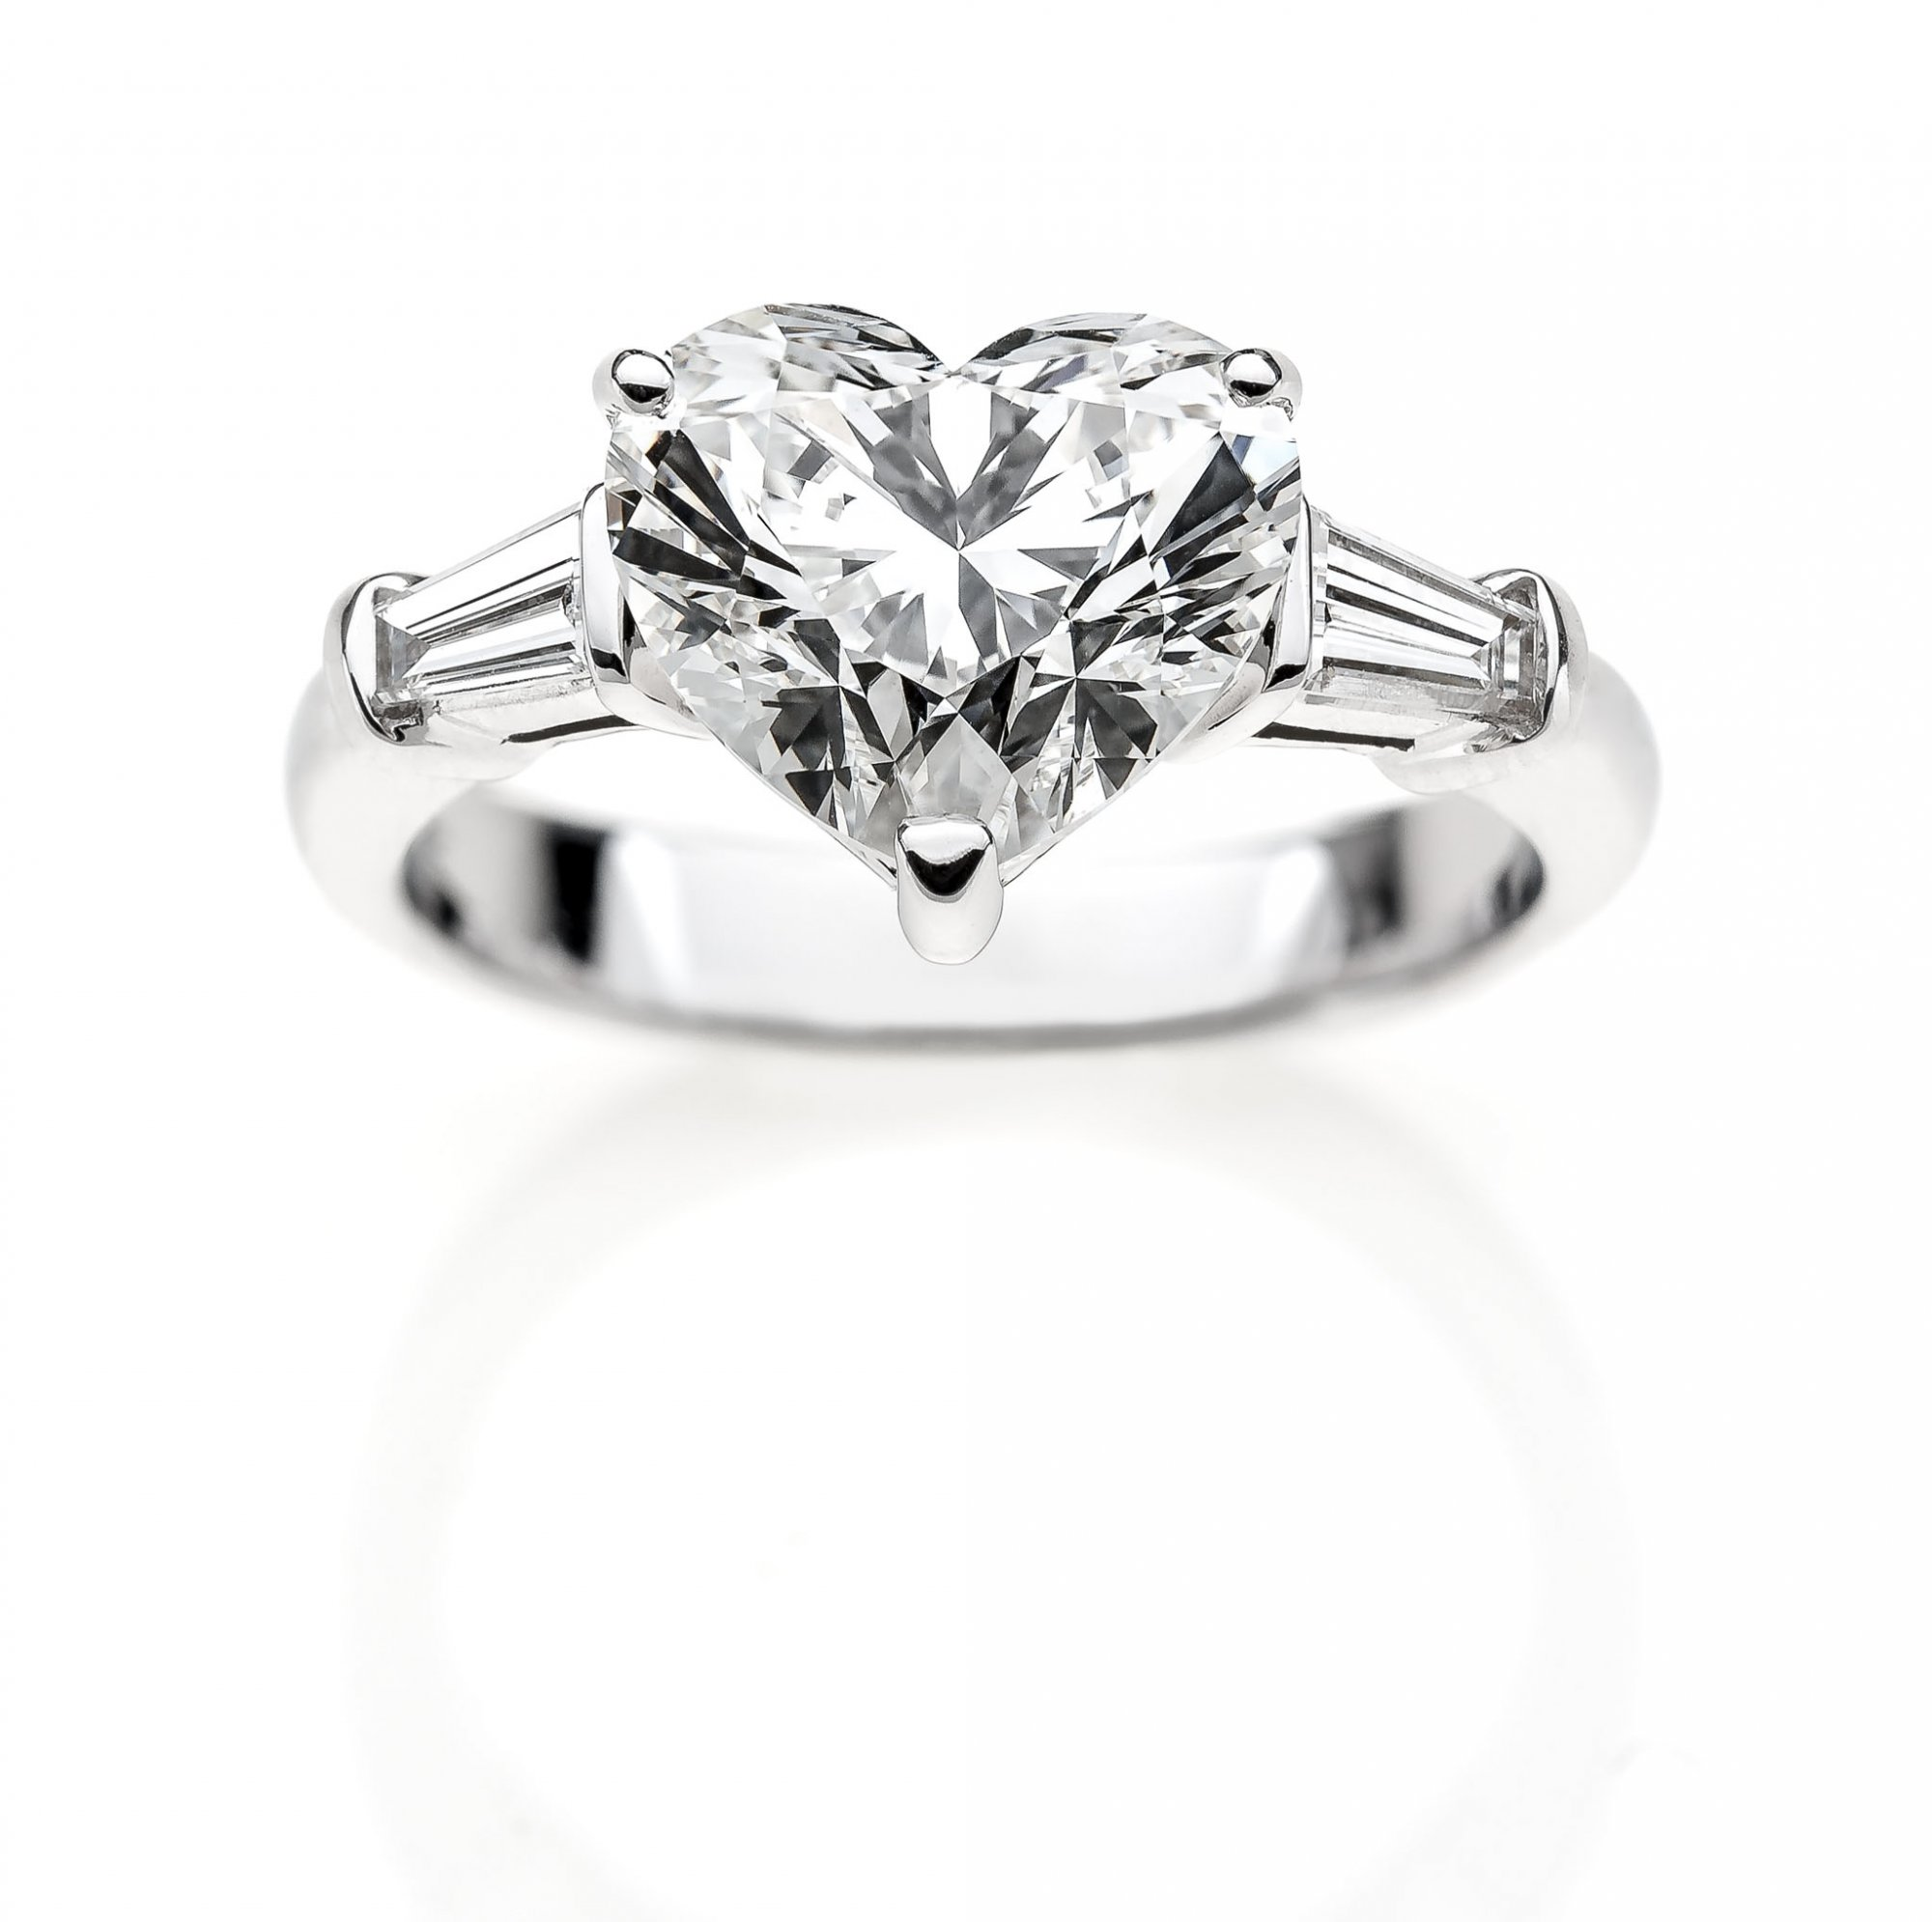 White Gold 18 KT Ring with Diamond Brilliant Heart ct.3.50 VS1 G color and Taepers ct.0.60 VS1 G color